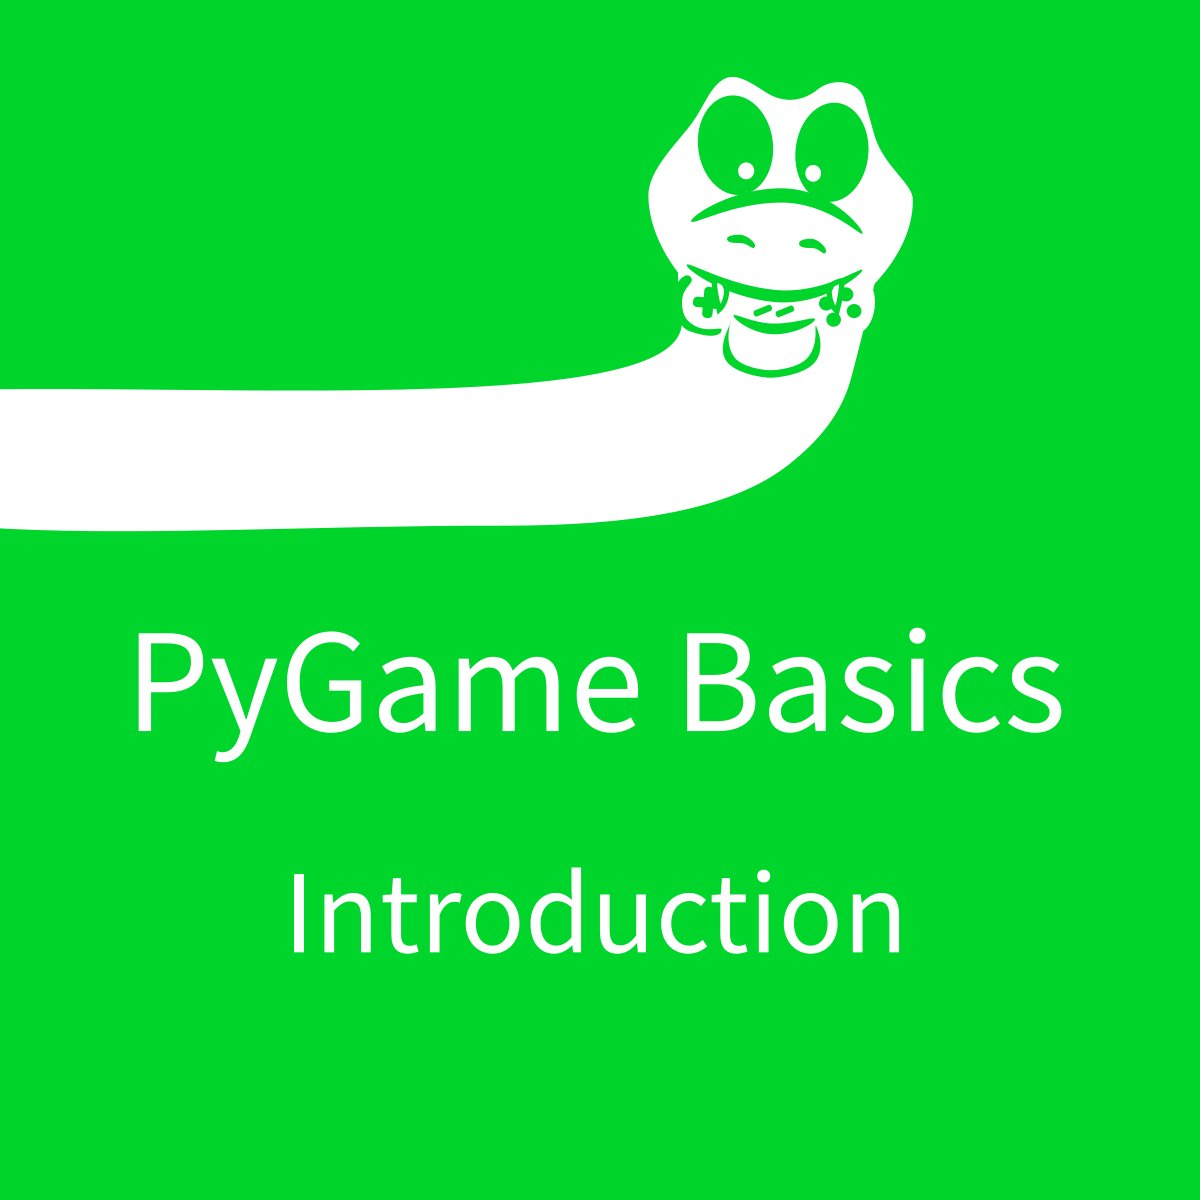 PyGame Basics: Introduction